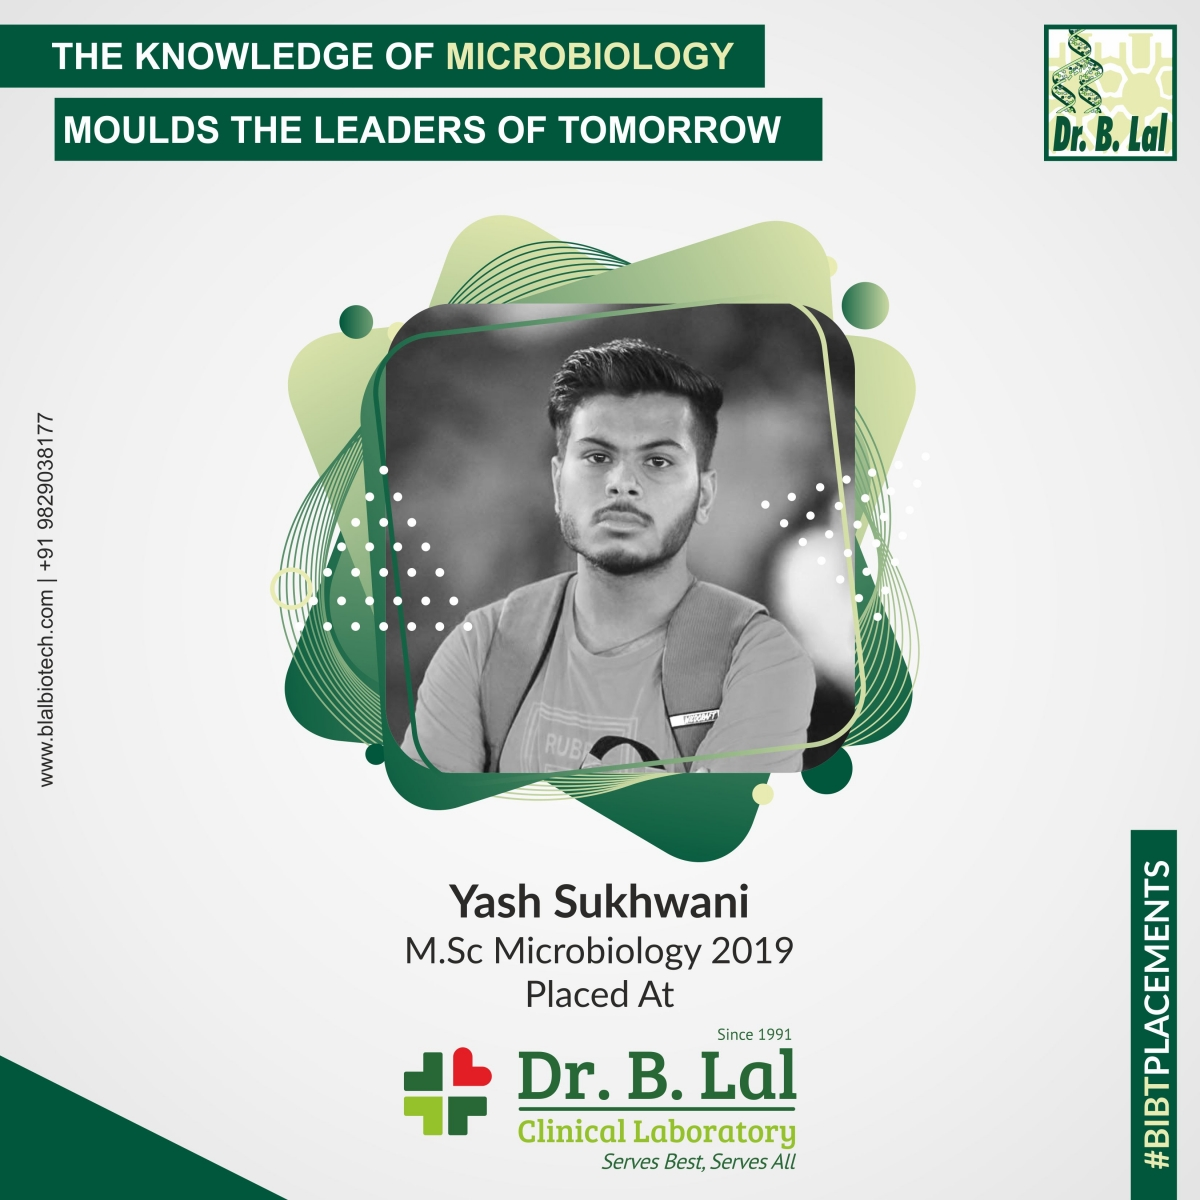 Yash Sukhwani, M.Sc. Microbiology 2019 | #BIBTPlacements